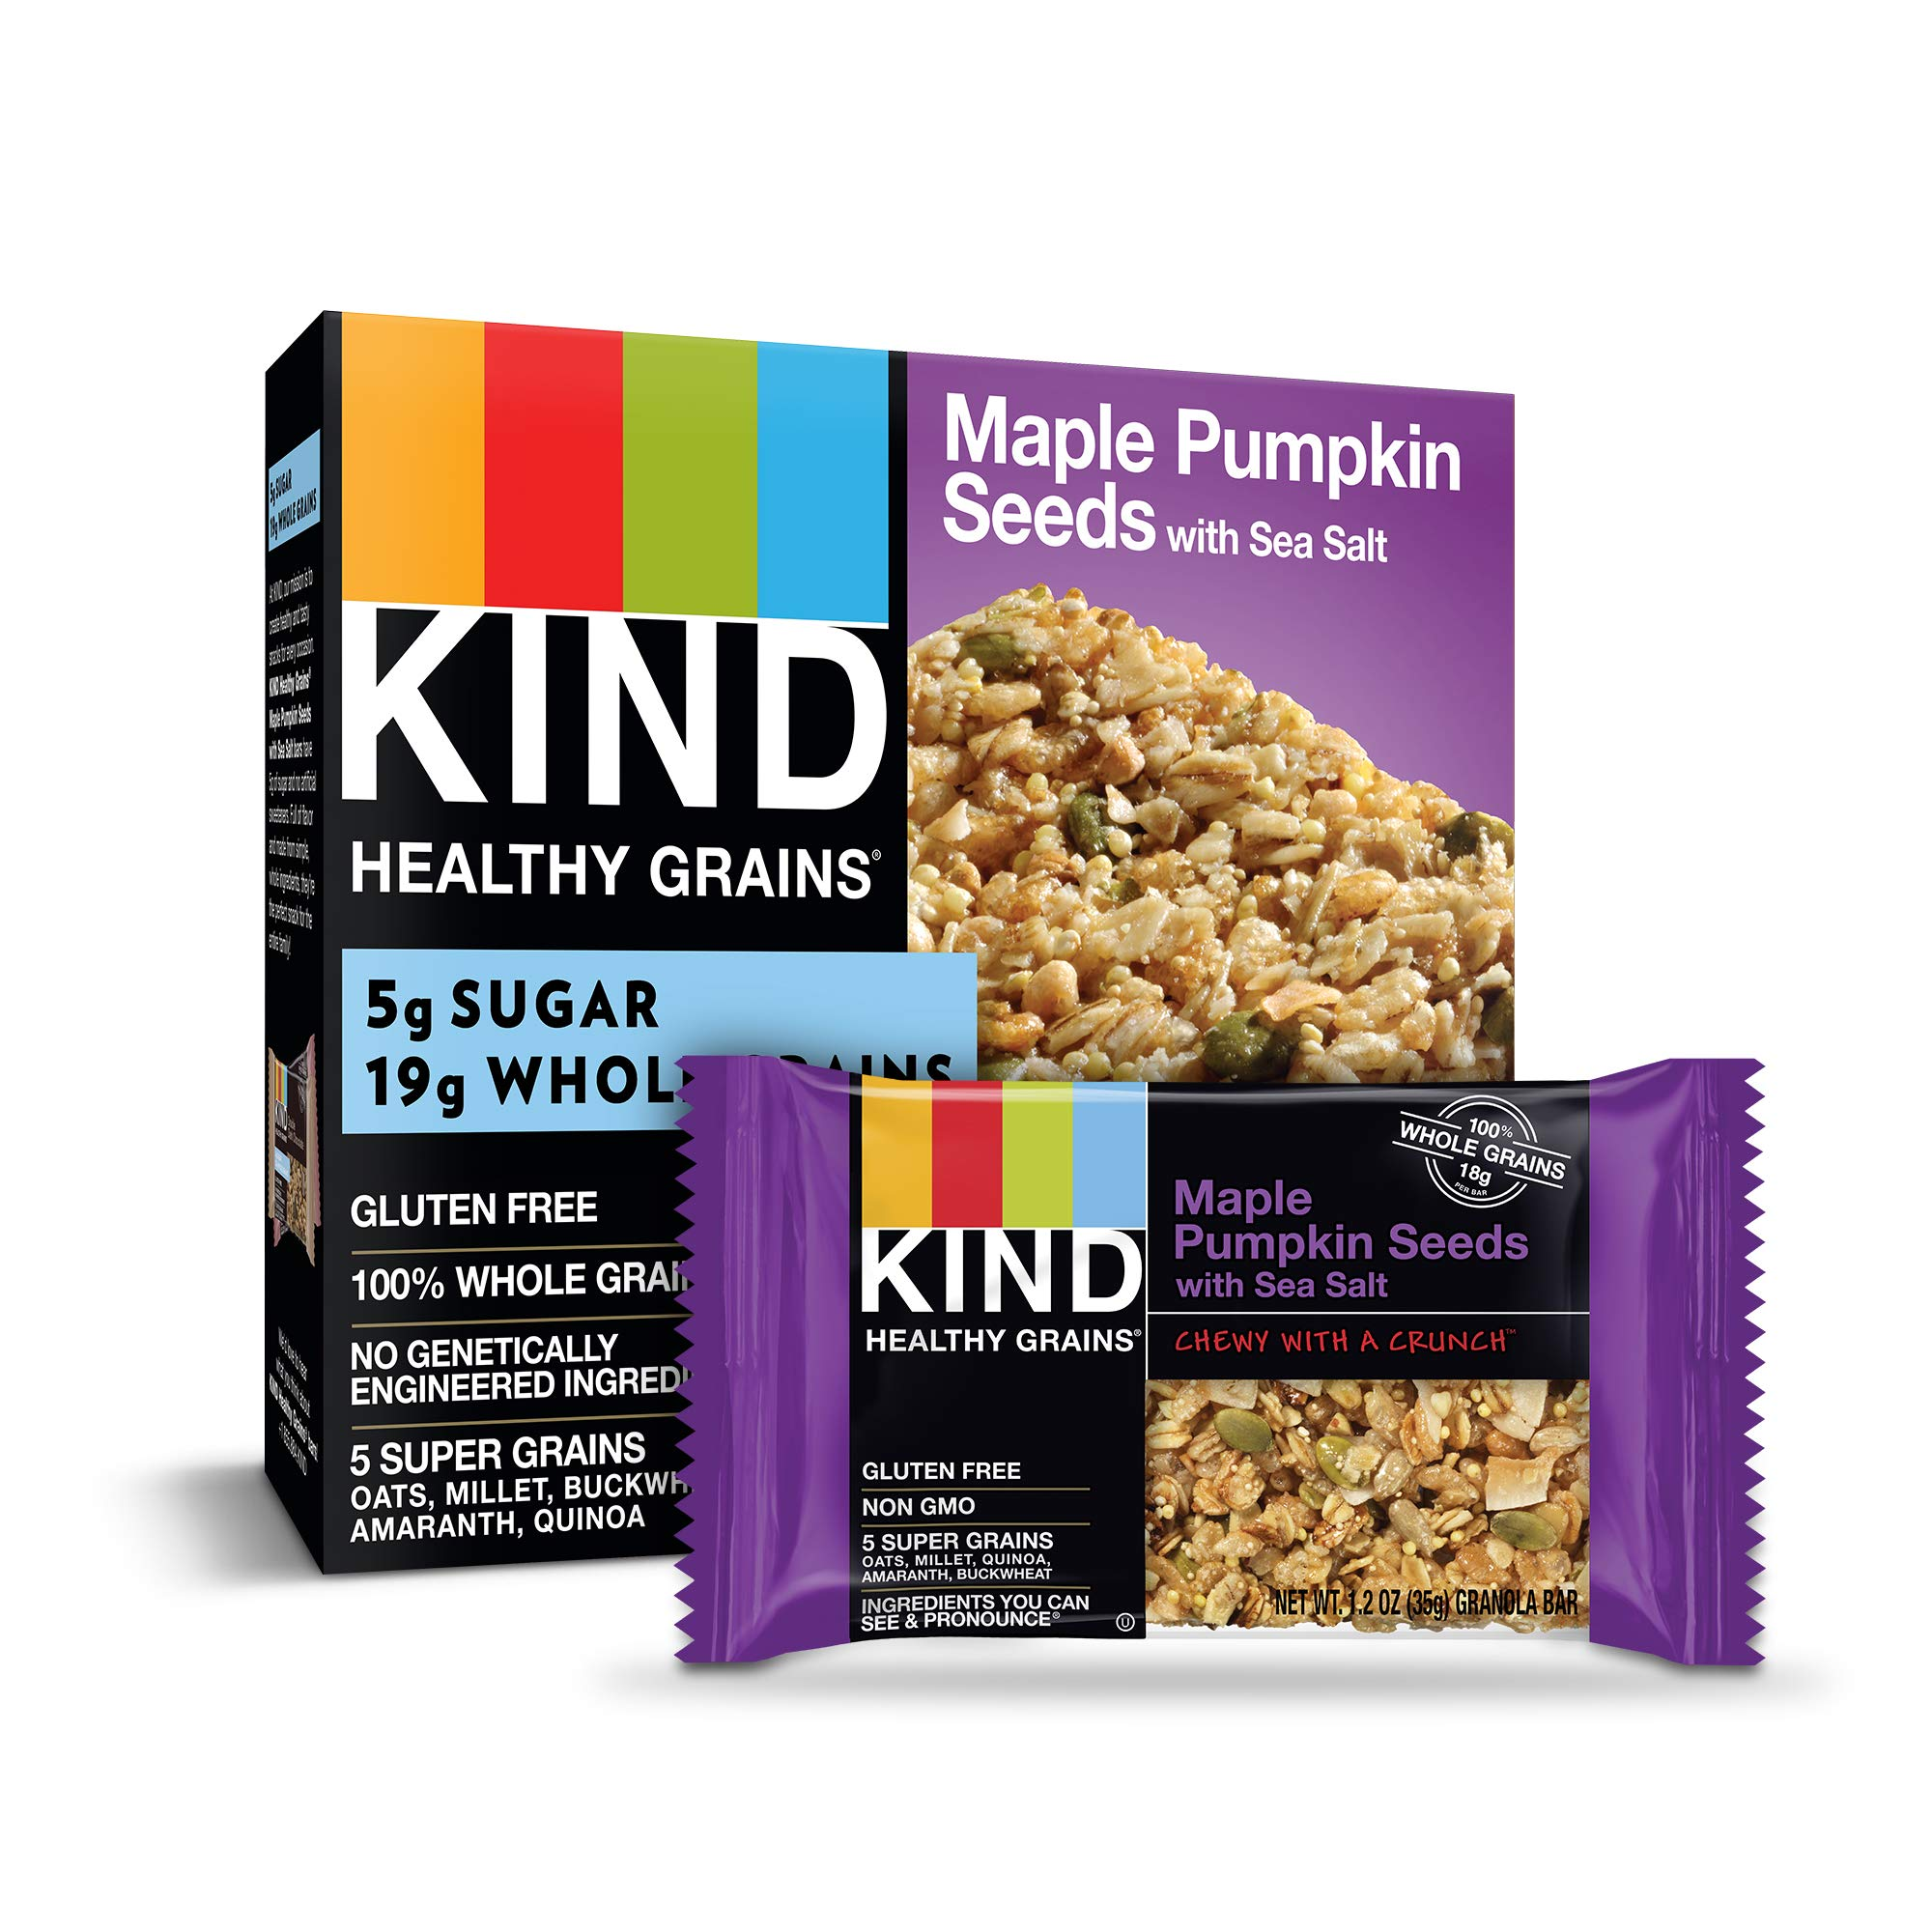 KIND Healthy Grains Granola Bars, Maple Pumpkin Seeds with Sea Salt, Gluten Free, 1.2 Ounce (Pack of 40) by KIND